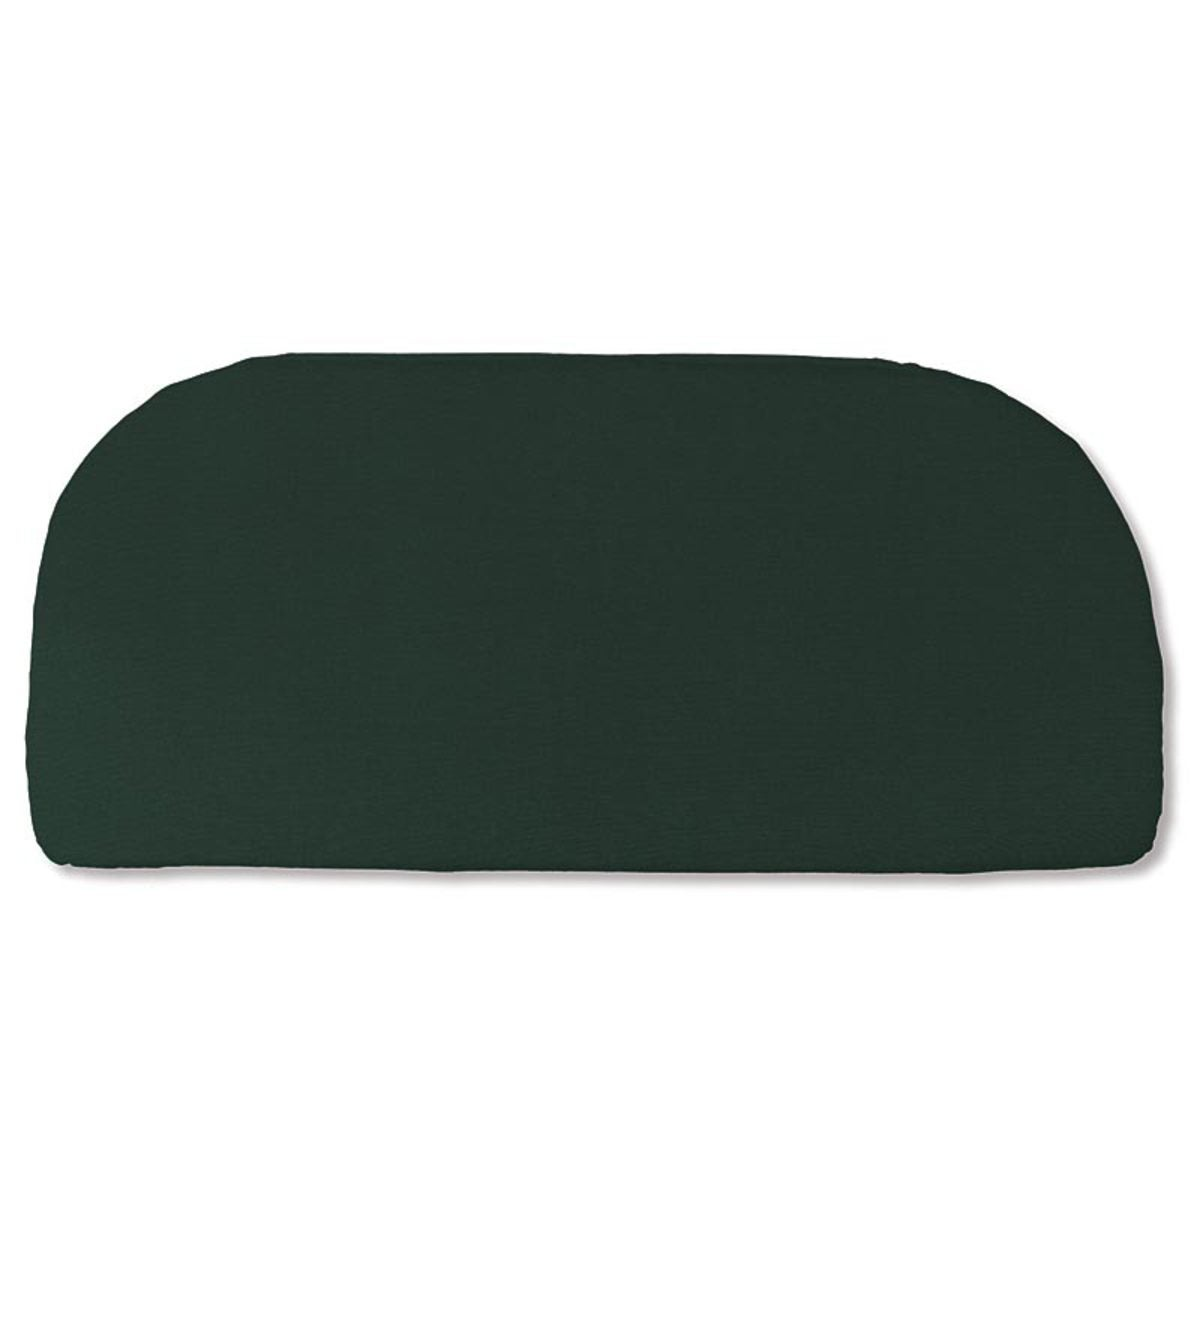 "Polyester Classic Swing/Bench Cushion, 41""x 18¾""x 3"" - Forest Green"